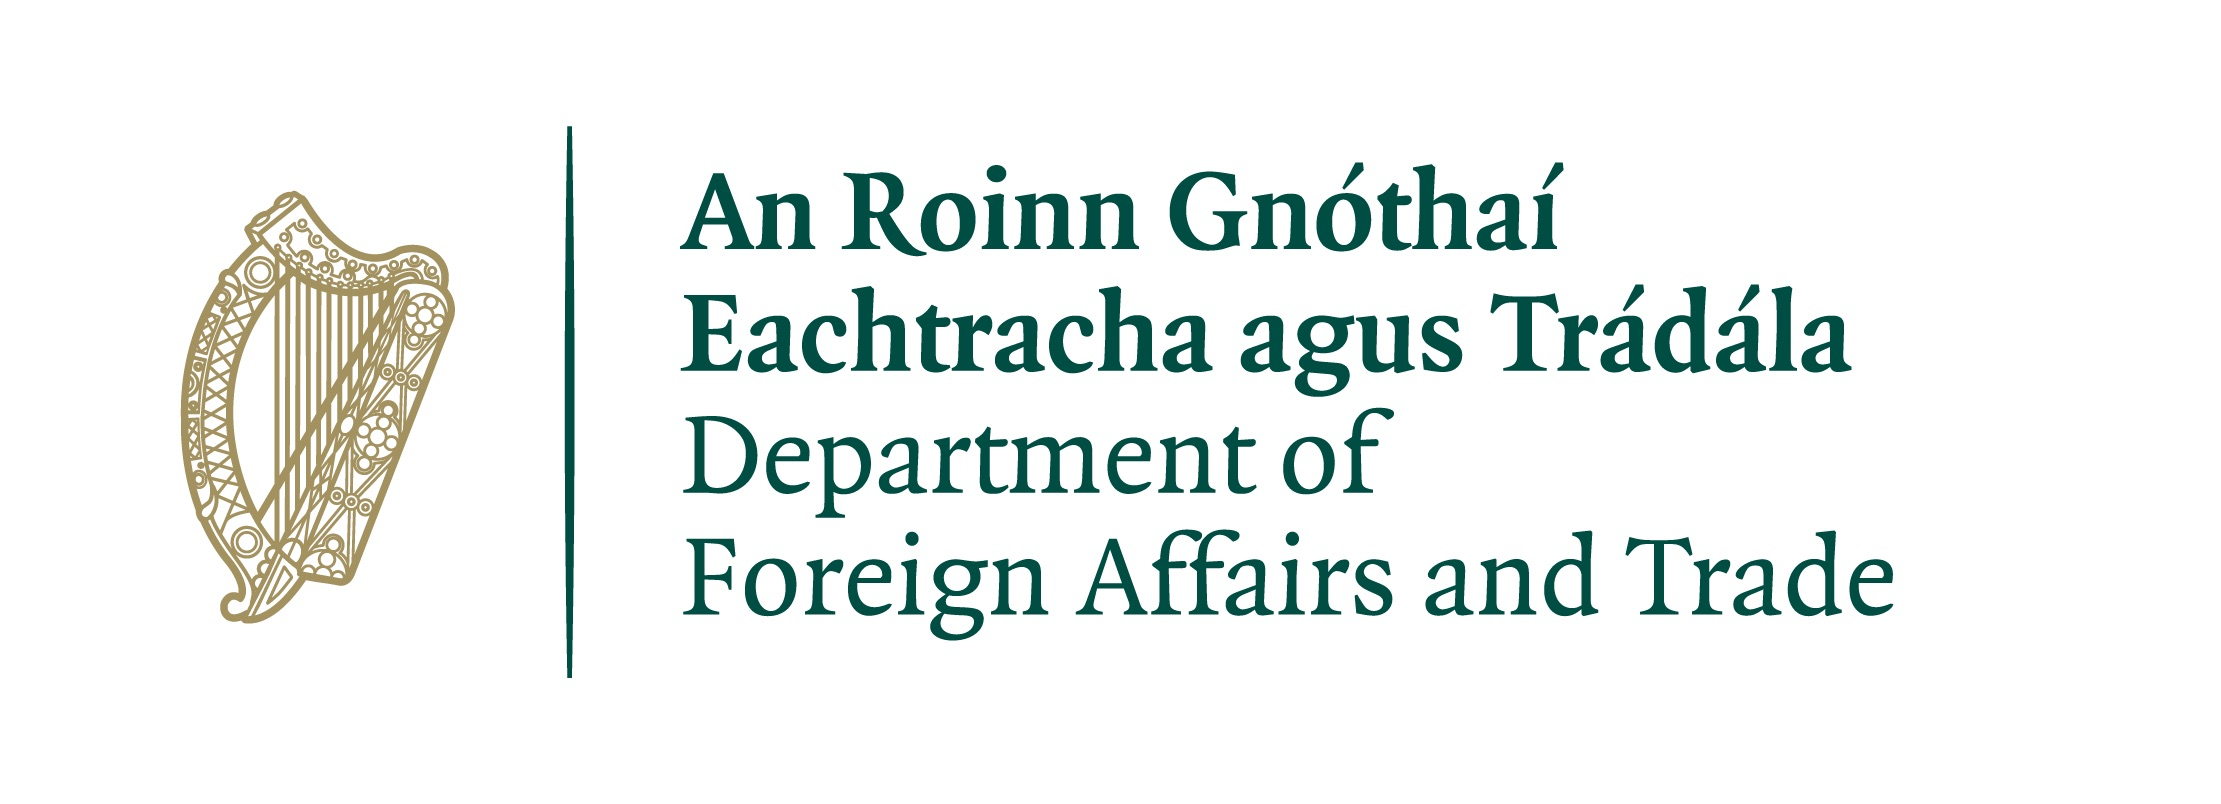 Irish foreign affairs logo